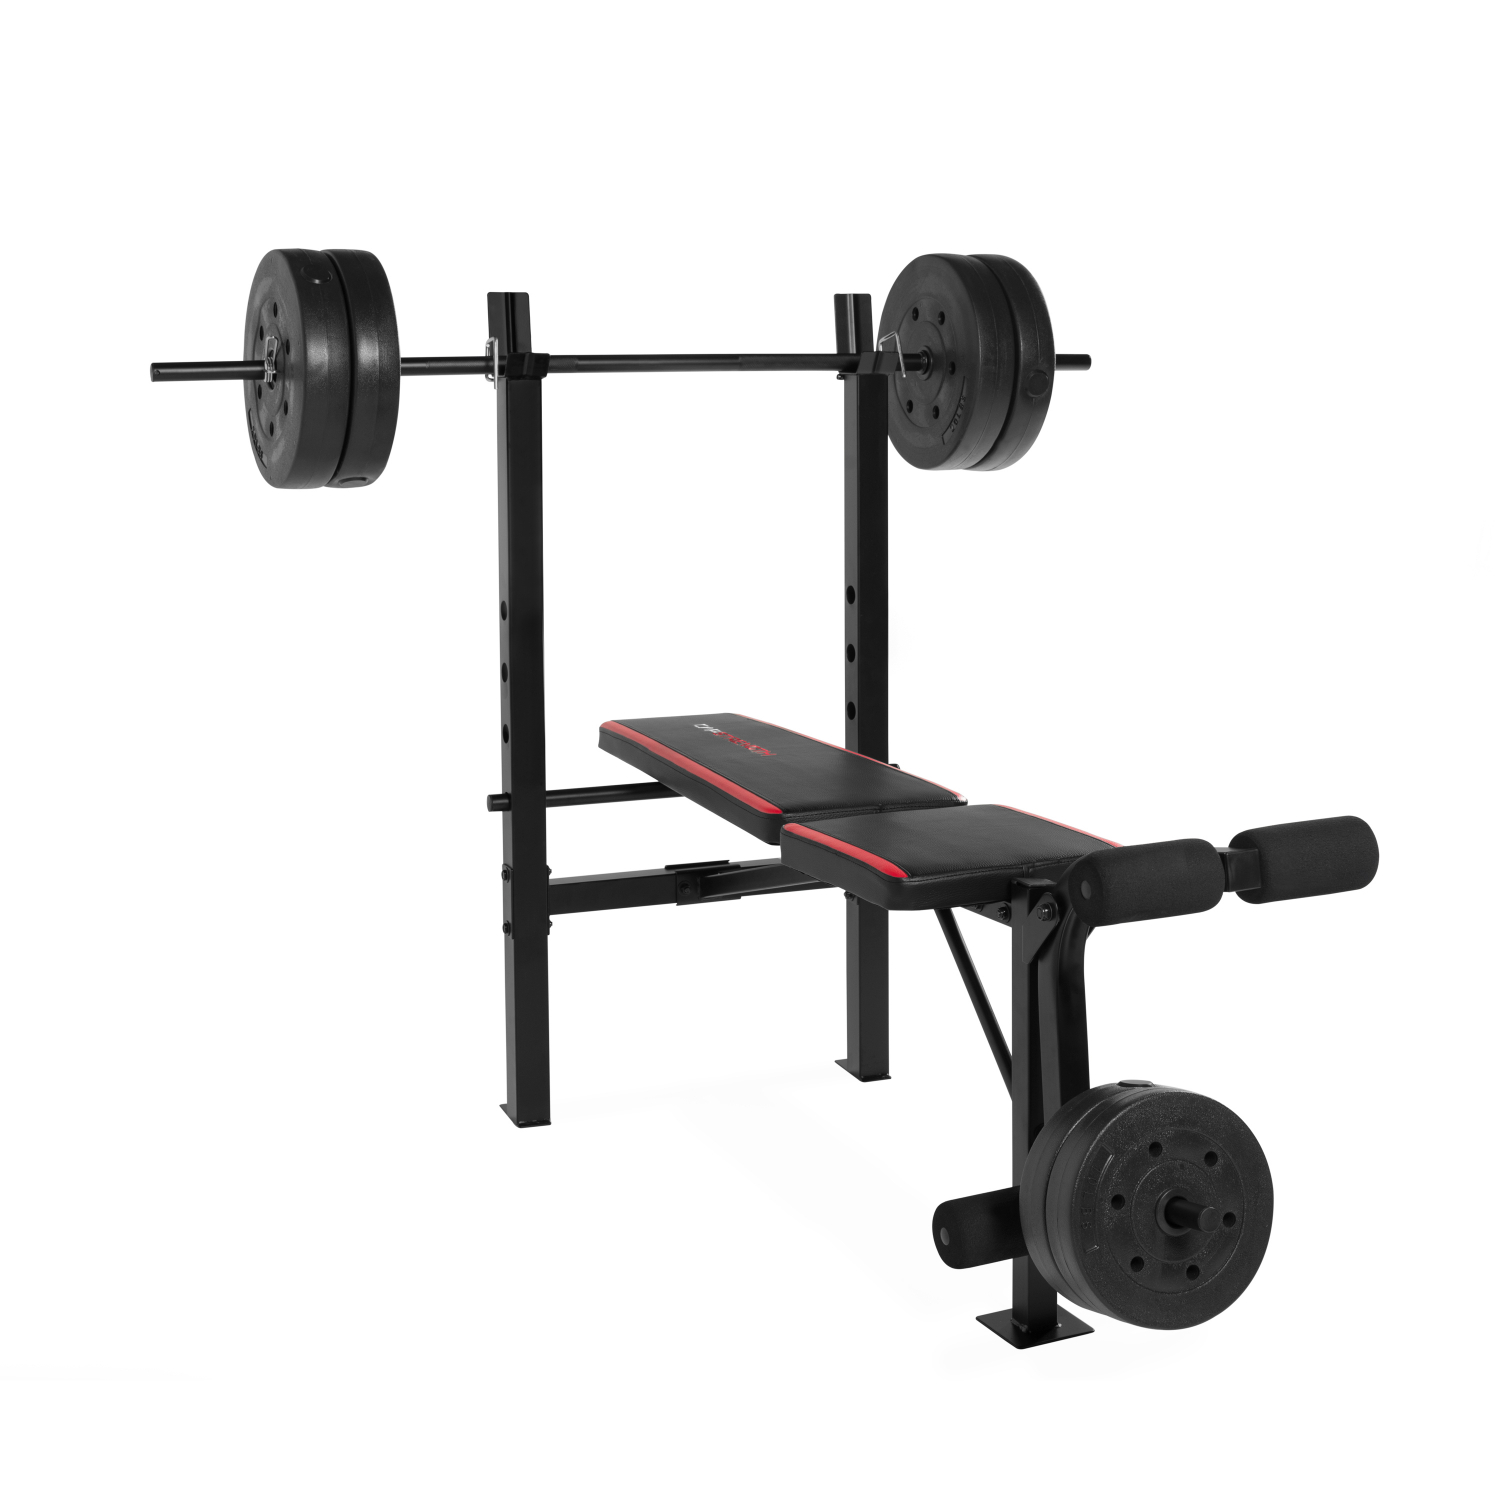 Weight Bench Bar Lift Set Weightlifting Exercise Workout Press Weights 100 lb eBay